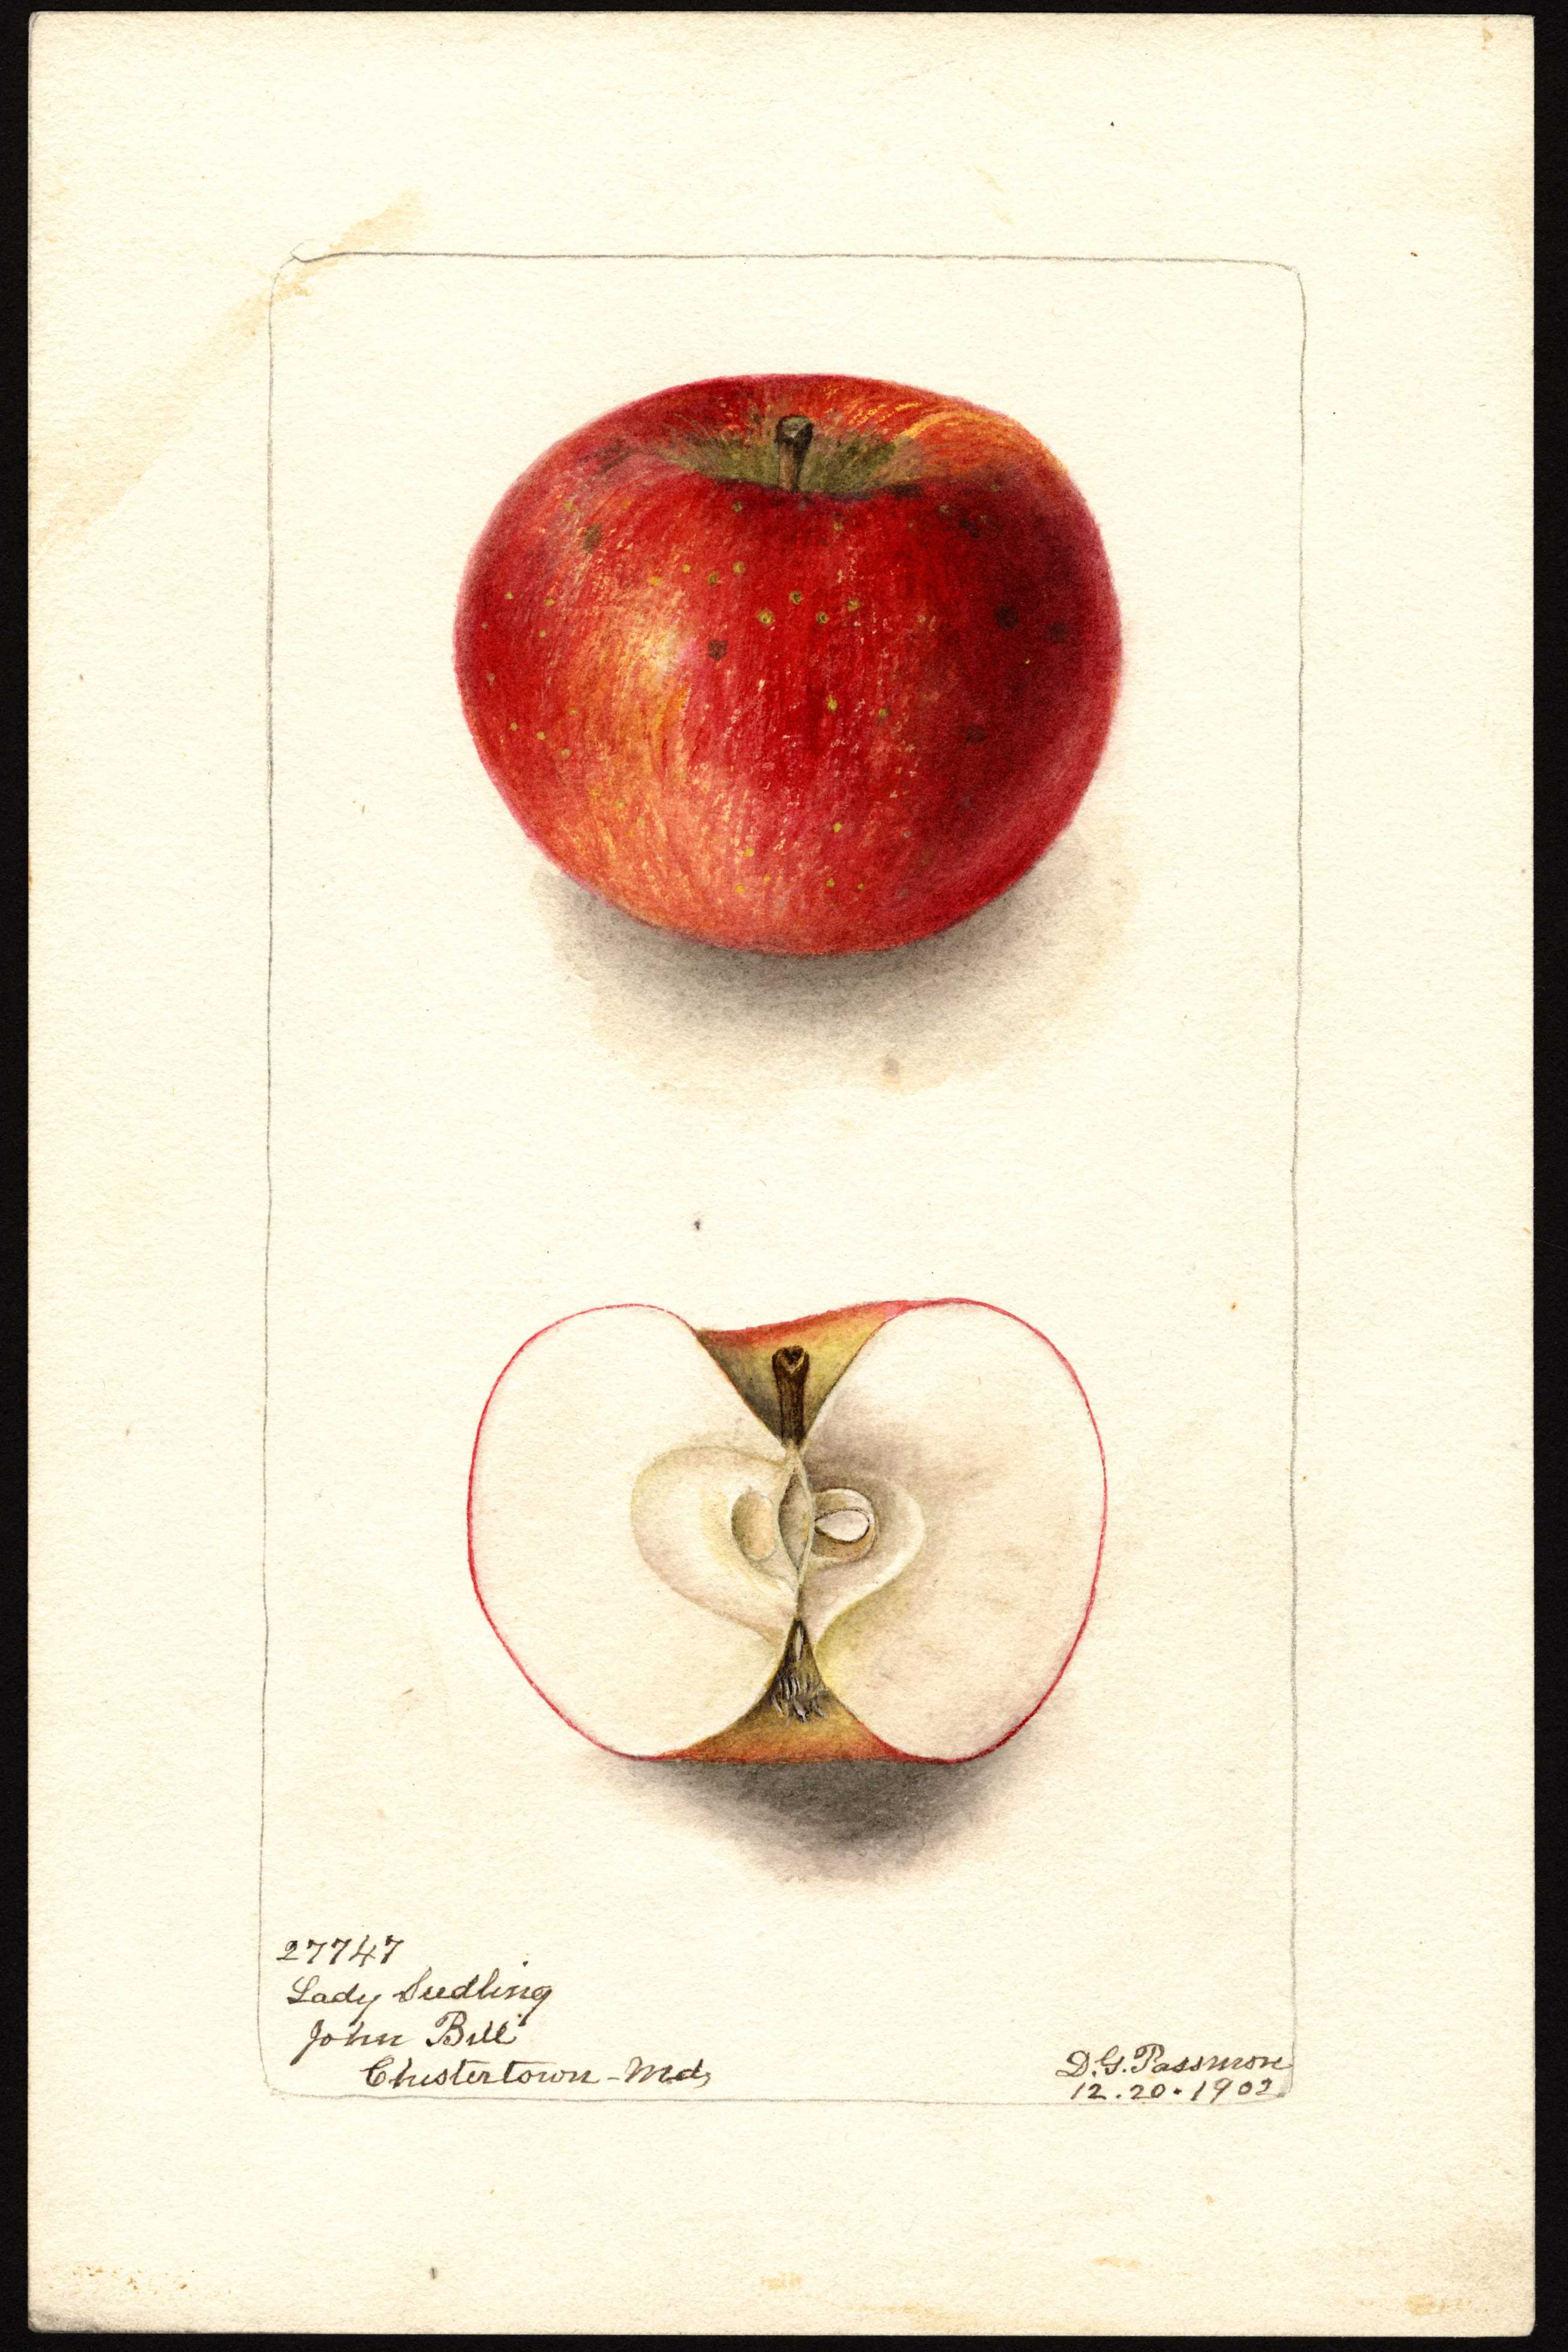 watercolor of a red apple with yellow streaks